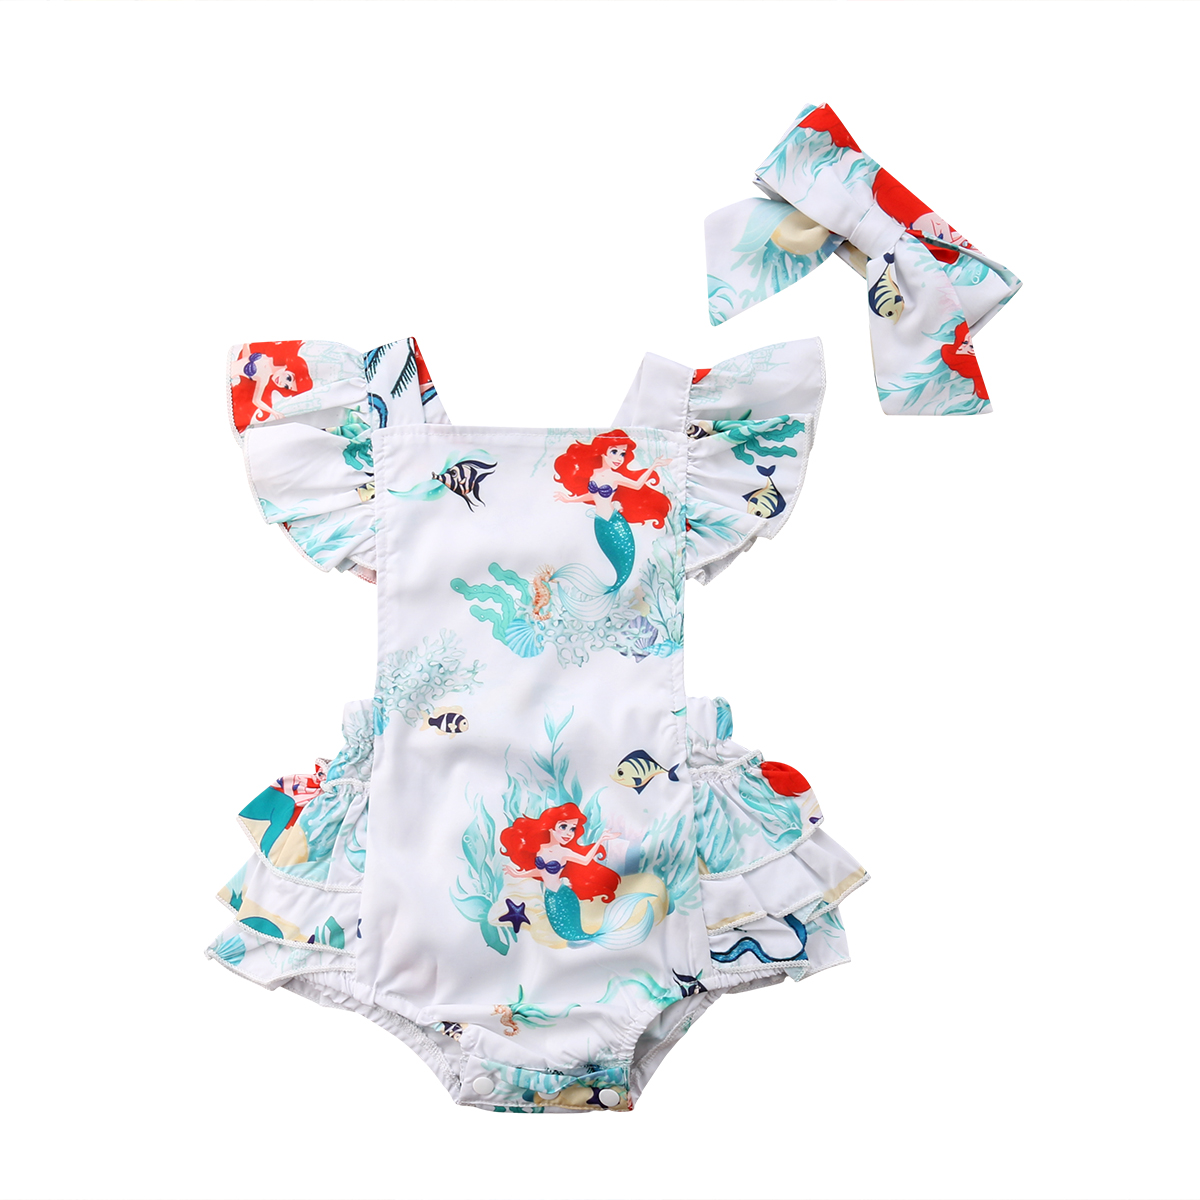 0-24 M Neu Sommer Infant Kinder Baby-spielanzug Overall + Stirnband Outfits Kleidung